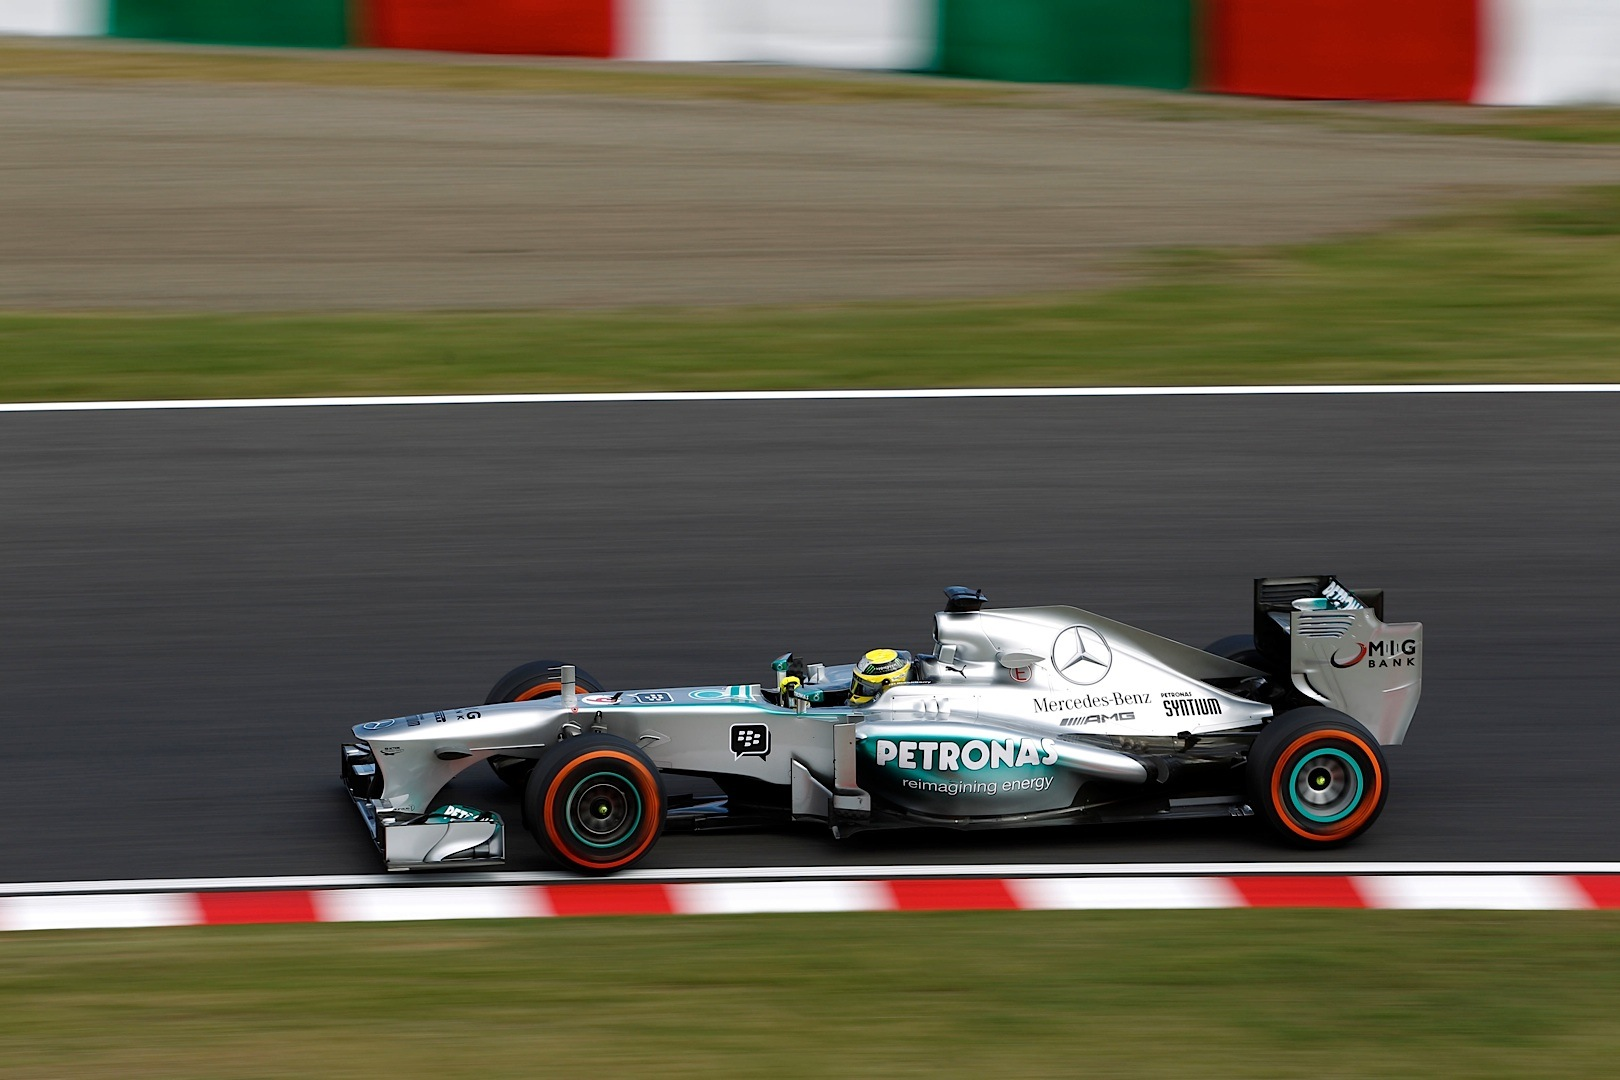 mercedes amg petronas drivers have mixed suzuka practice autoevolution. Black Bedroom Furniture Sets. Home Design Ideas